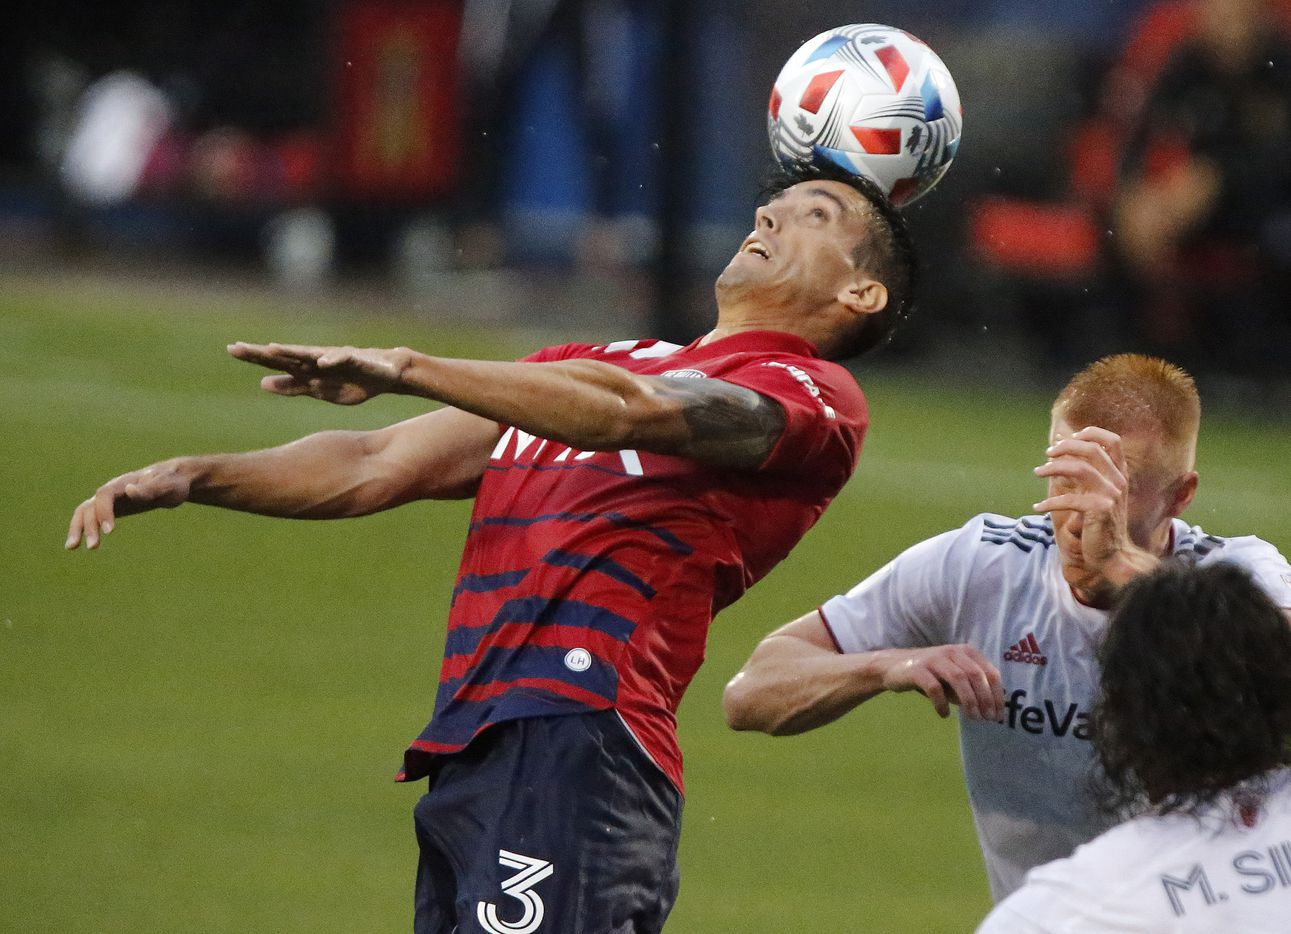 FC Dallas defender Jose Antonio Martinez (3) gets a header in front of the goal during the first half as FC Dallas hosted Real Salt Lake at Toyota Stadium in Frisco on Saturday, May 22, 2021. (Stewart F. House/Special Contributor)